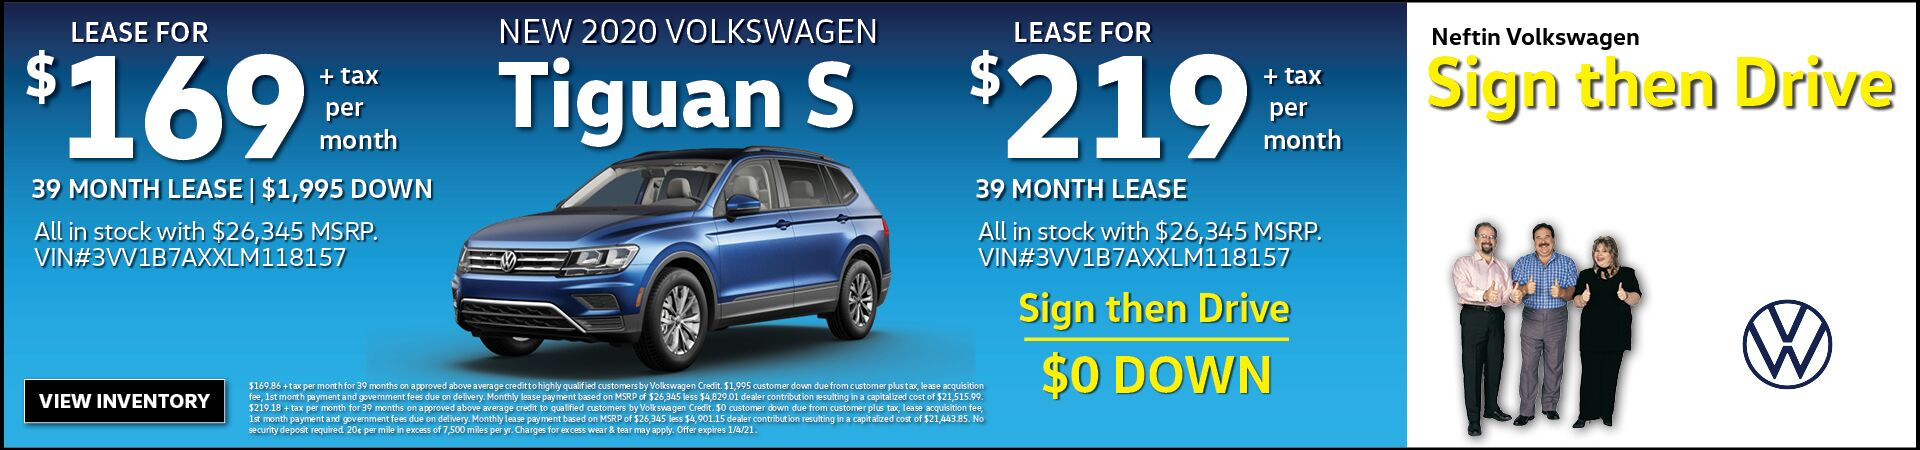 Nov. '20 Tiguan S Lease Offer